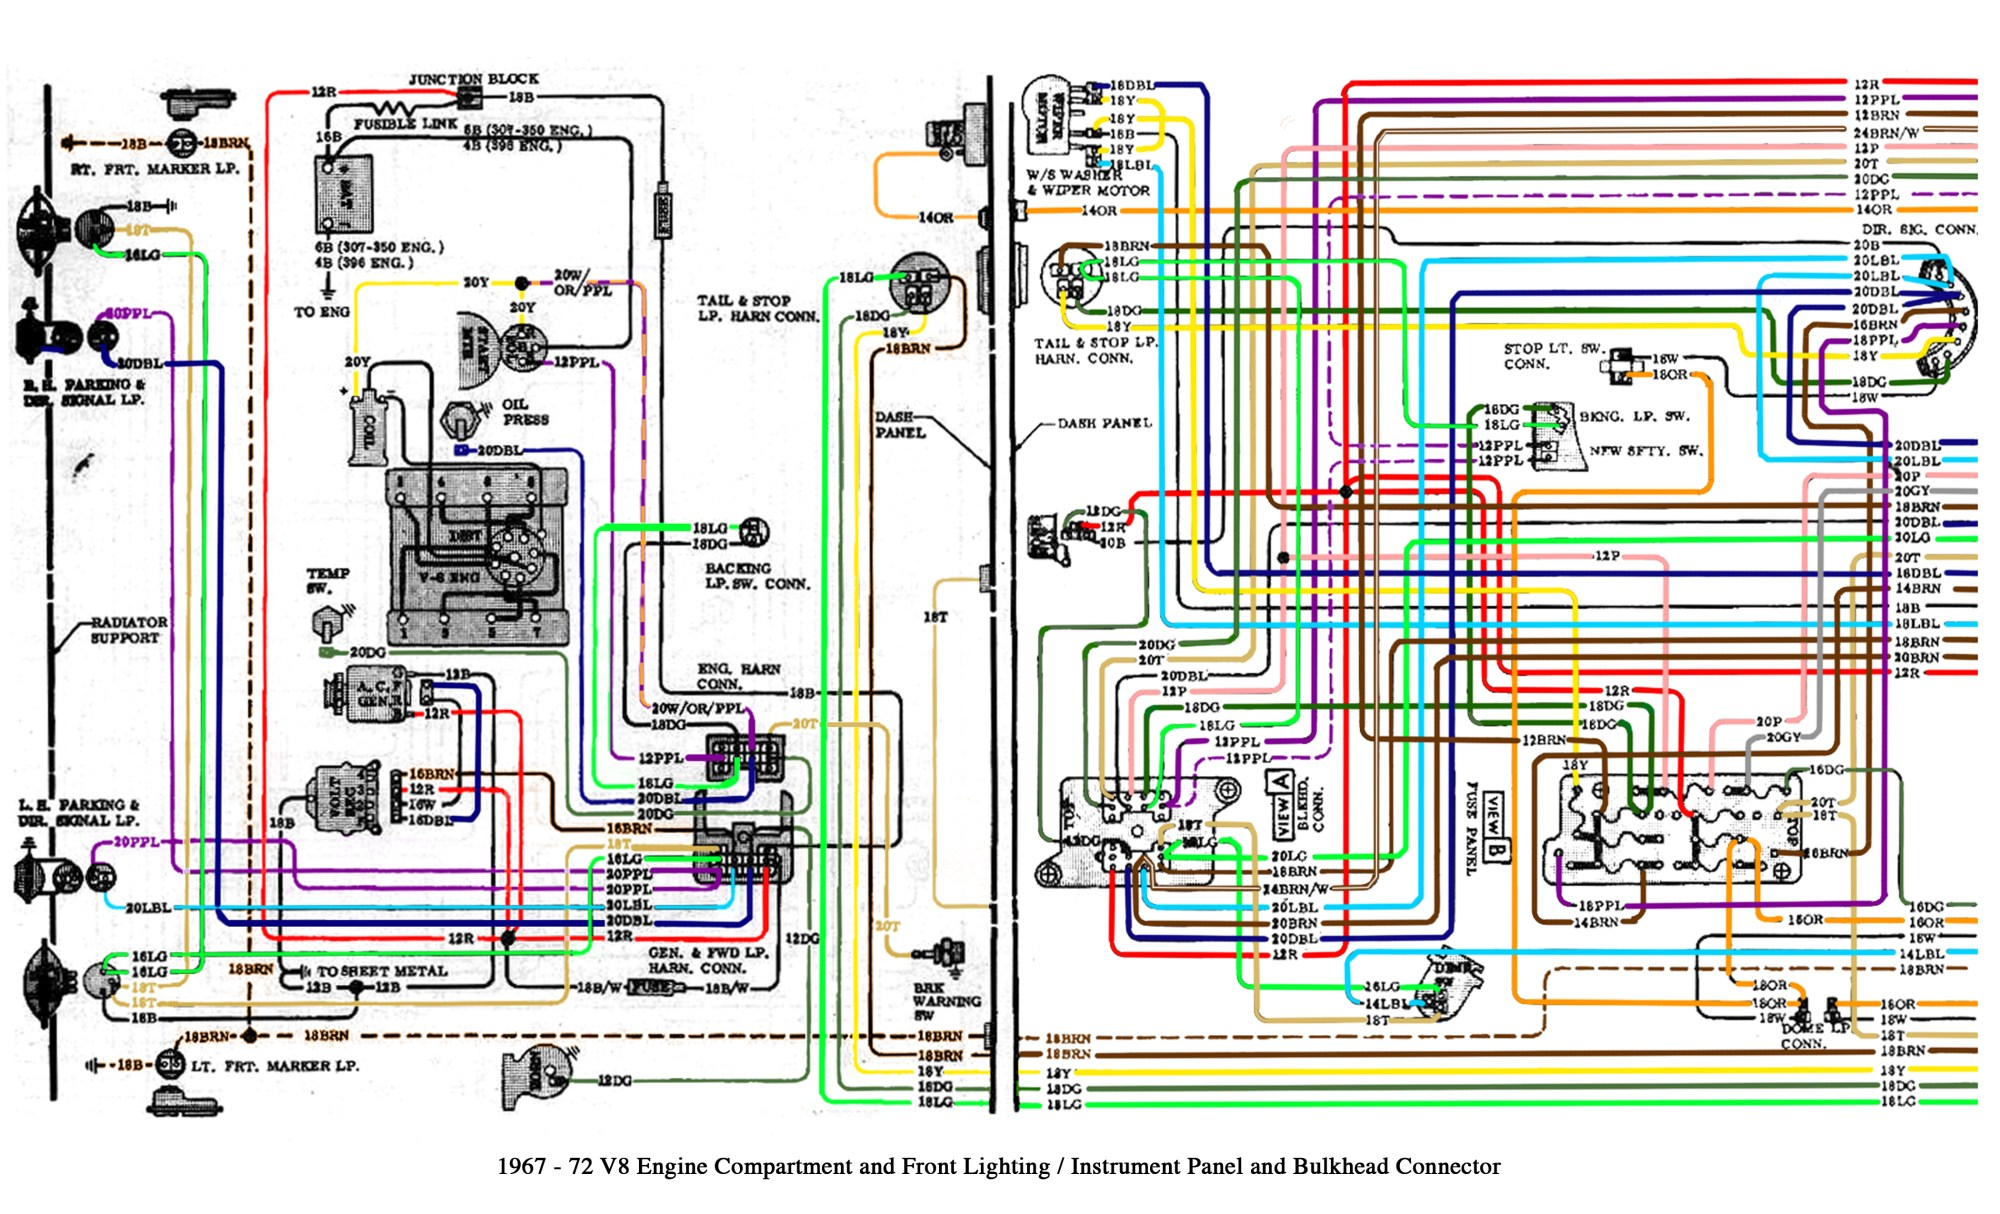 hight resolution of 1975 gmc truck engine compartment diagram wiring diagram list 1975 chevy truck wiring schematic